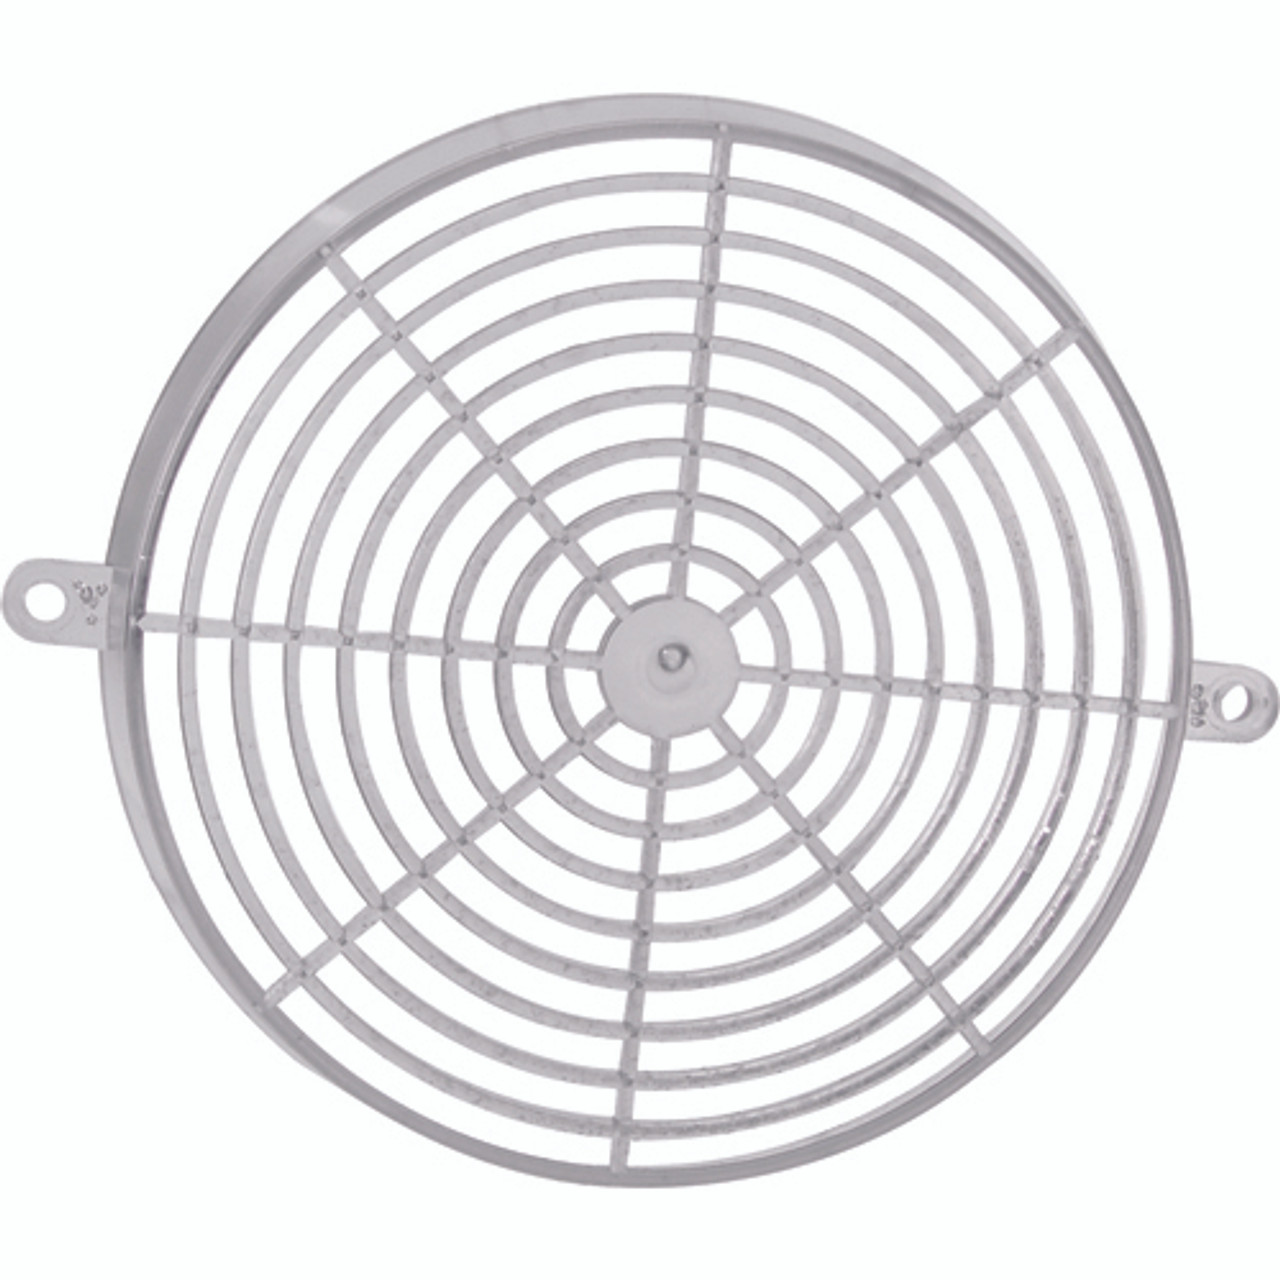 "CONTINENTAL REFRIGERATION 40622 GUARDFAN (6-7/8"")"